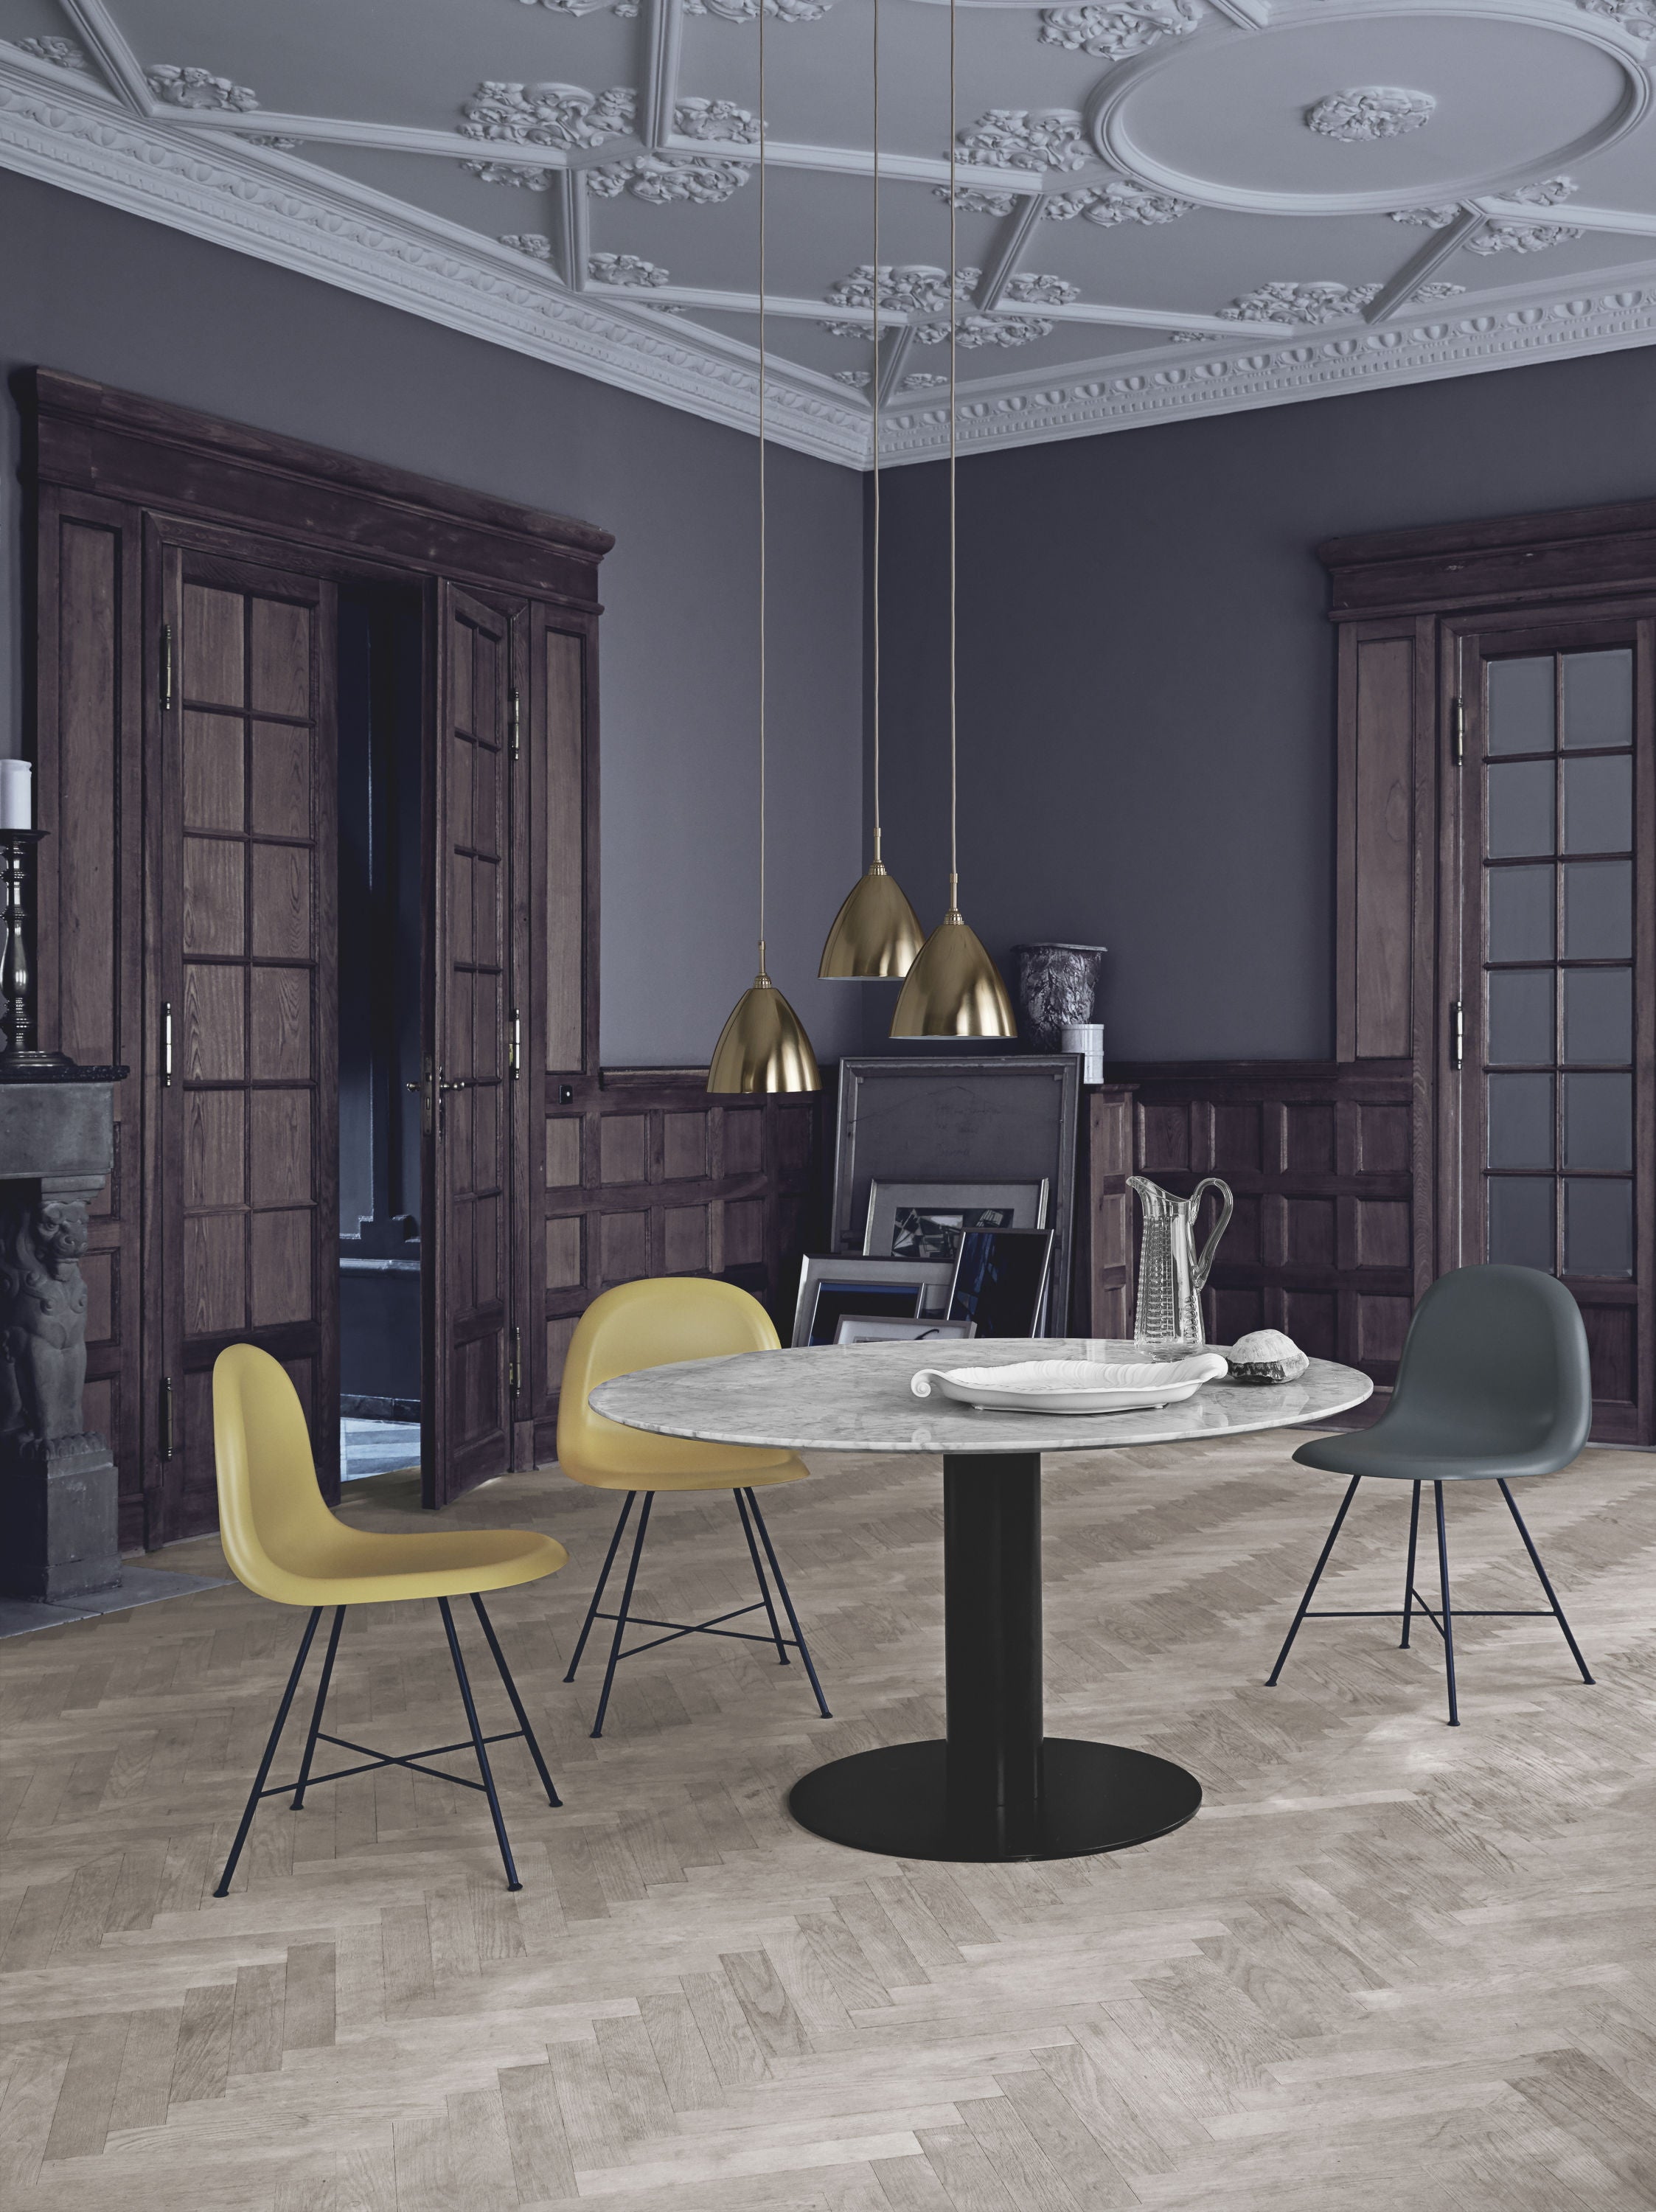 GUBI 2.0 Dining Table - Round - Dia 130 Black Base, Laminate Black Top fra GUBI